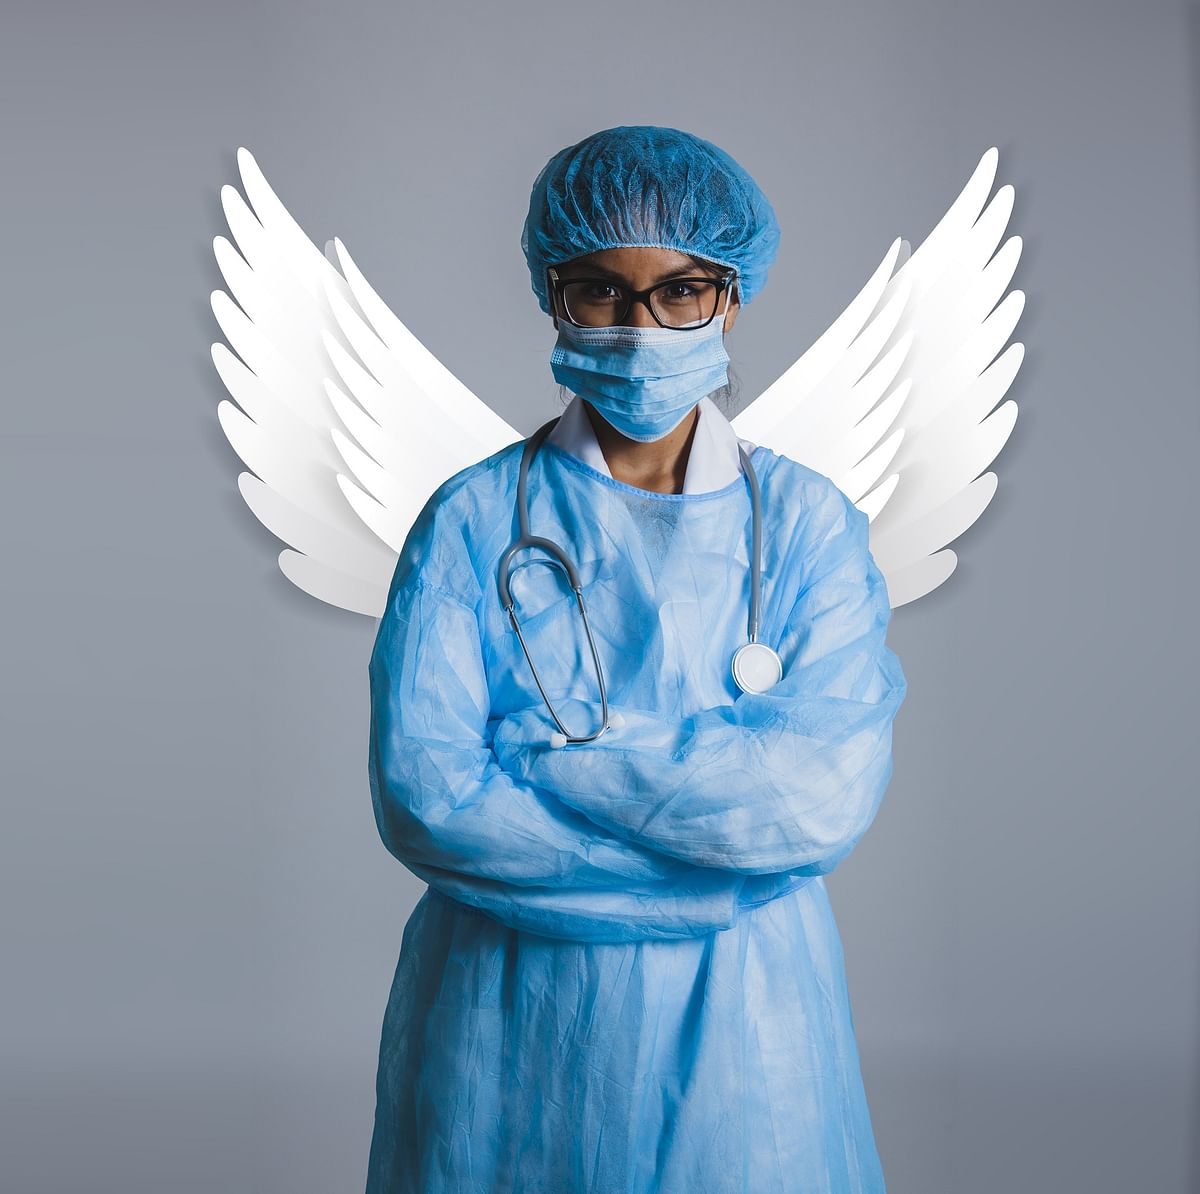 Doctors at the receiving end in a pandemic